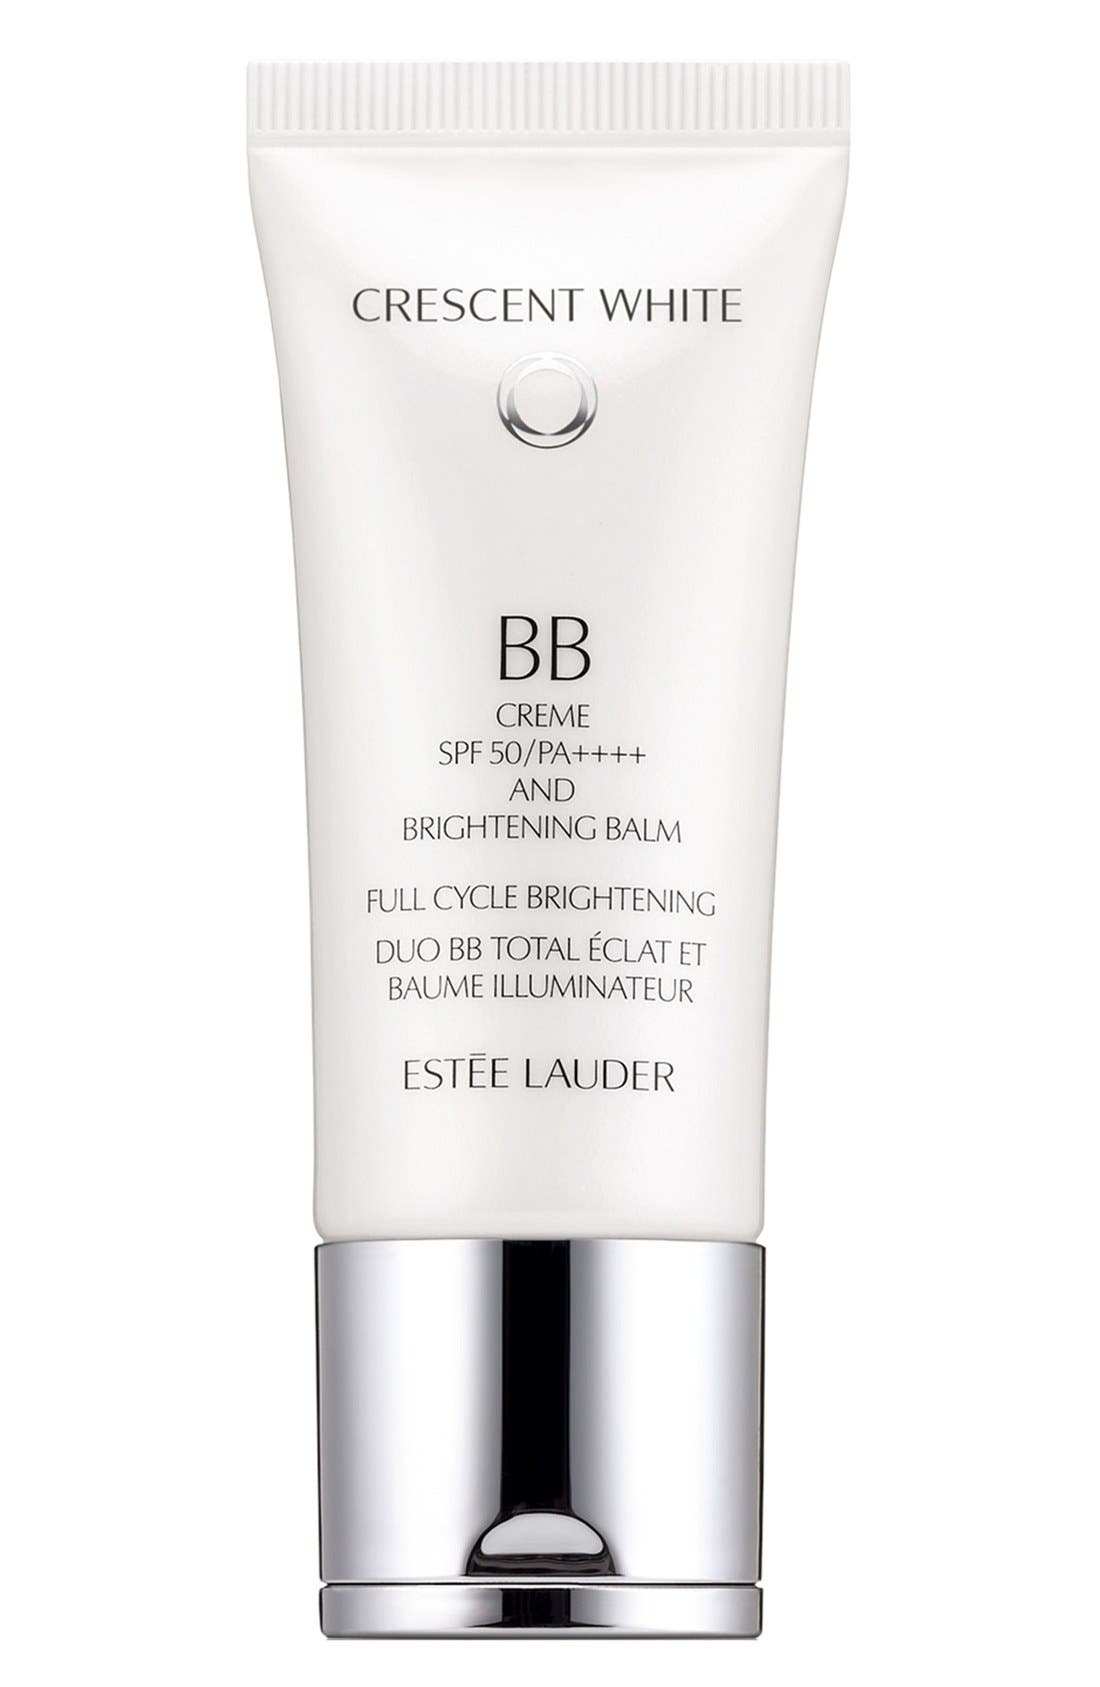 'Crescent White' Full Cycle BB Créme & Brightening Balm SPF 50,                             Main thumbnail 1, color,                             000